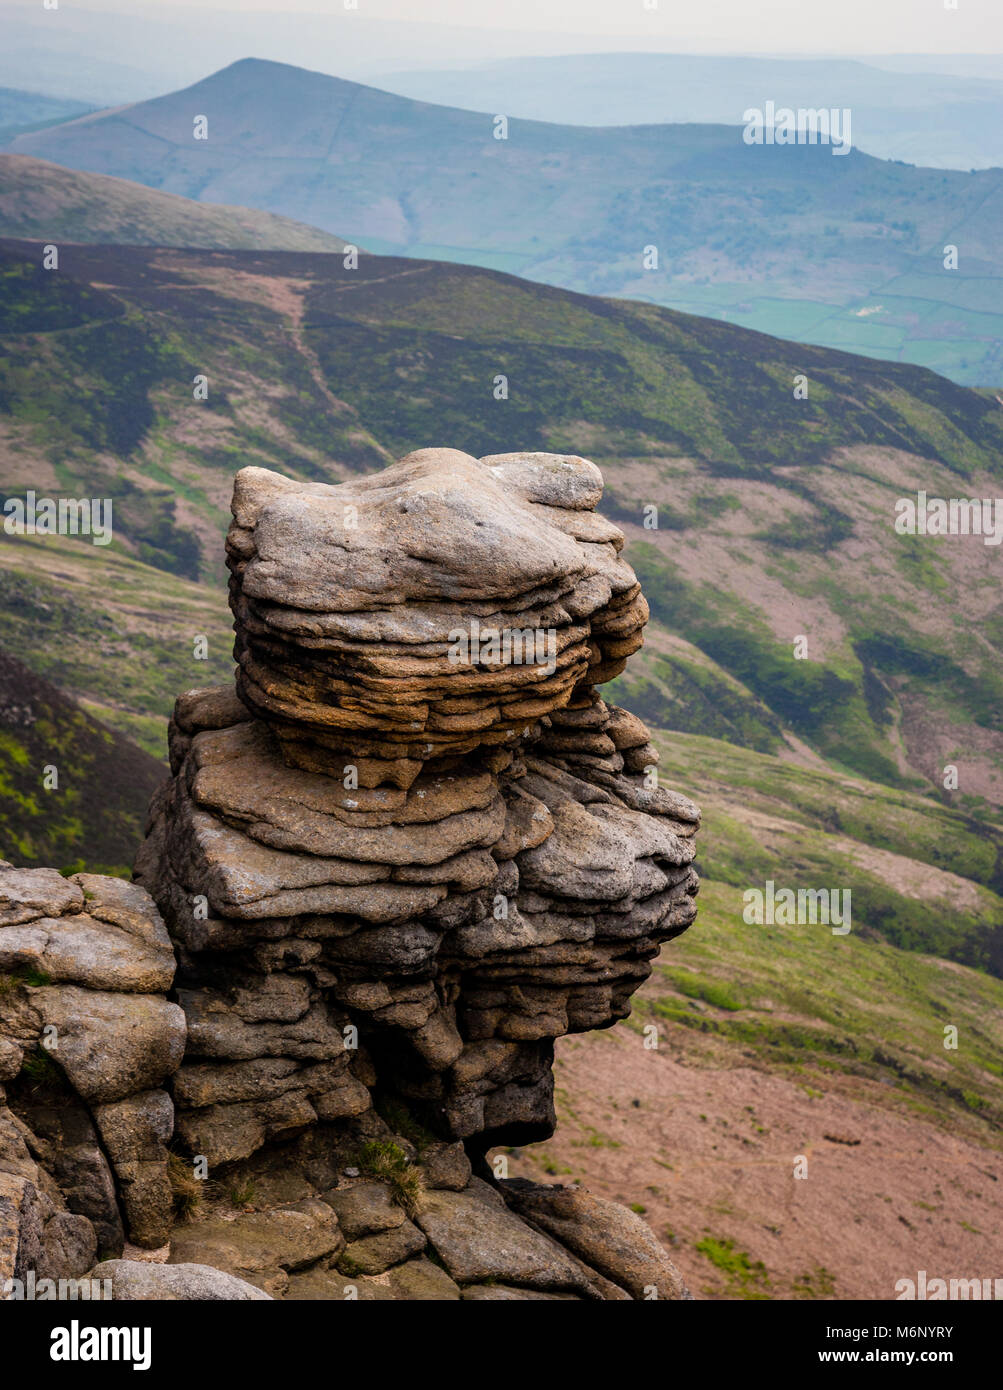 Weathered  gritstones of Upper Tor looking over Grindsbrook towards Lose Hill on Kinder Scout in the Derbyshire - Stock Image